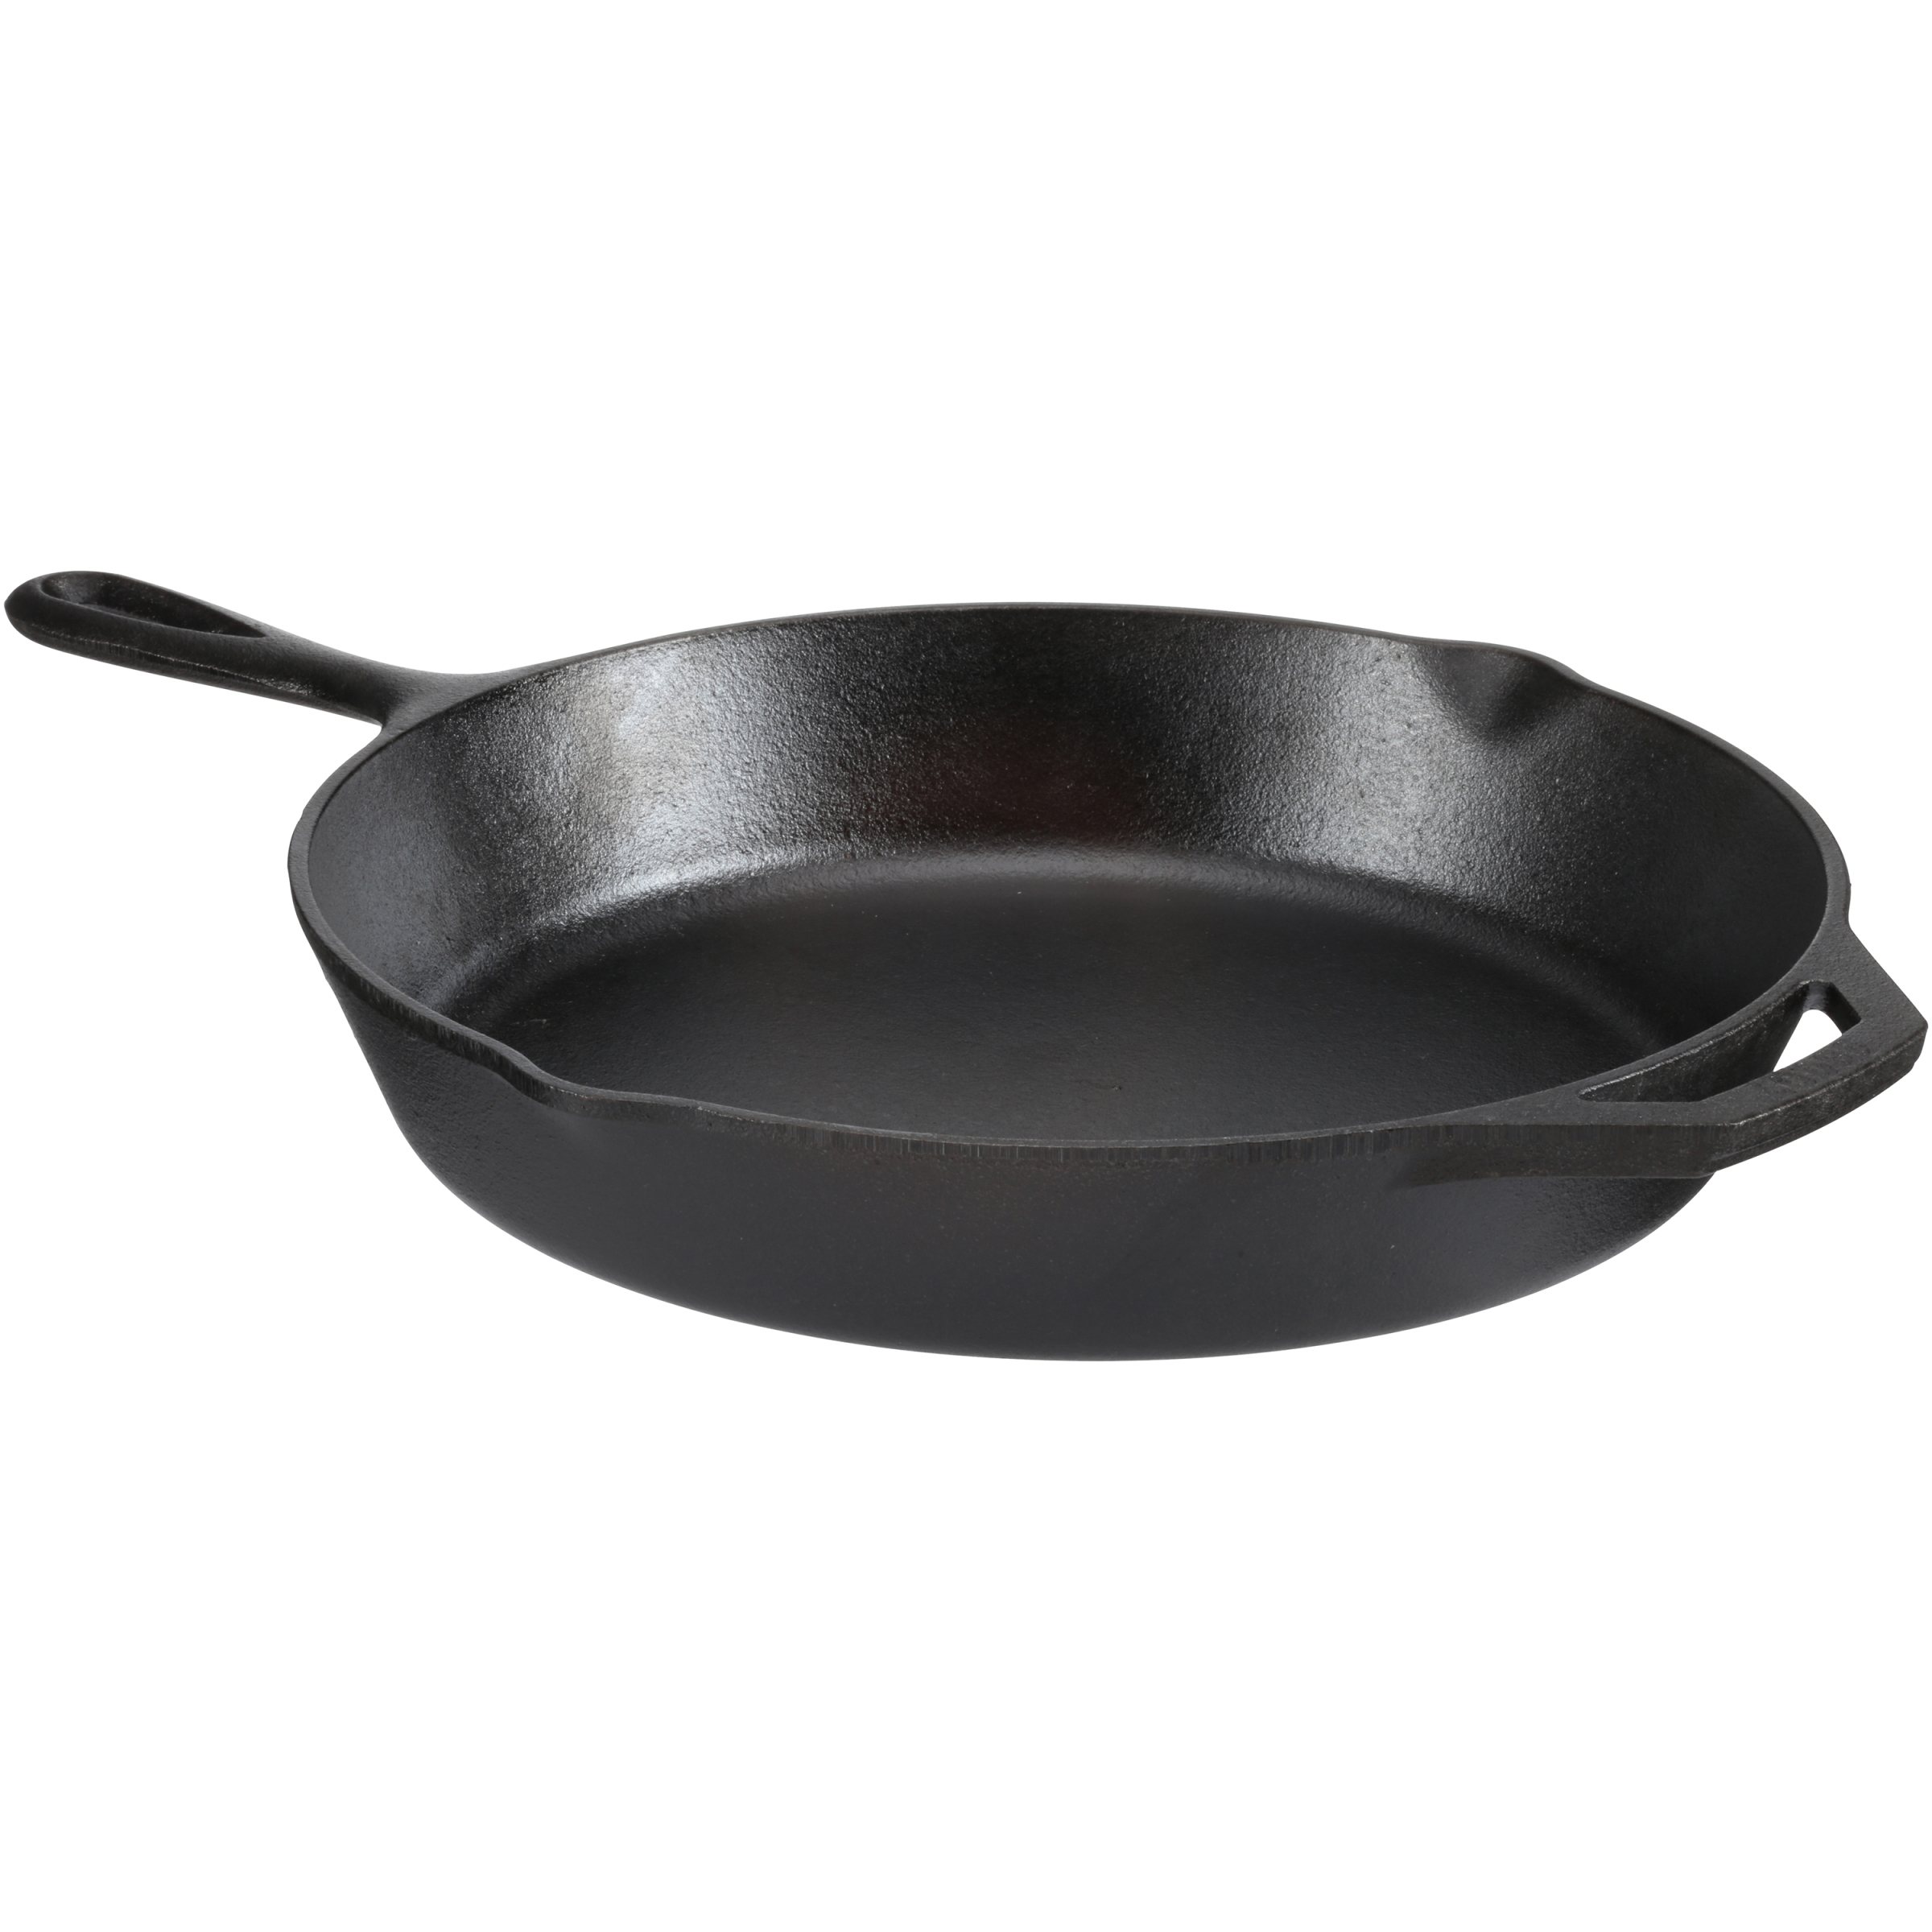 "Lodge Logic 12"" Boy Scouts of America Cast Iron Seasoned Skillet, L10SK3BS by Lodge Mfg Co"